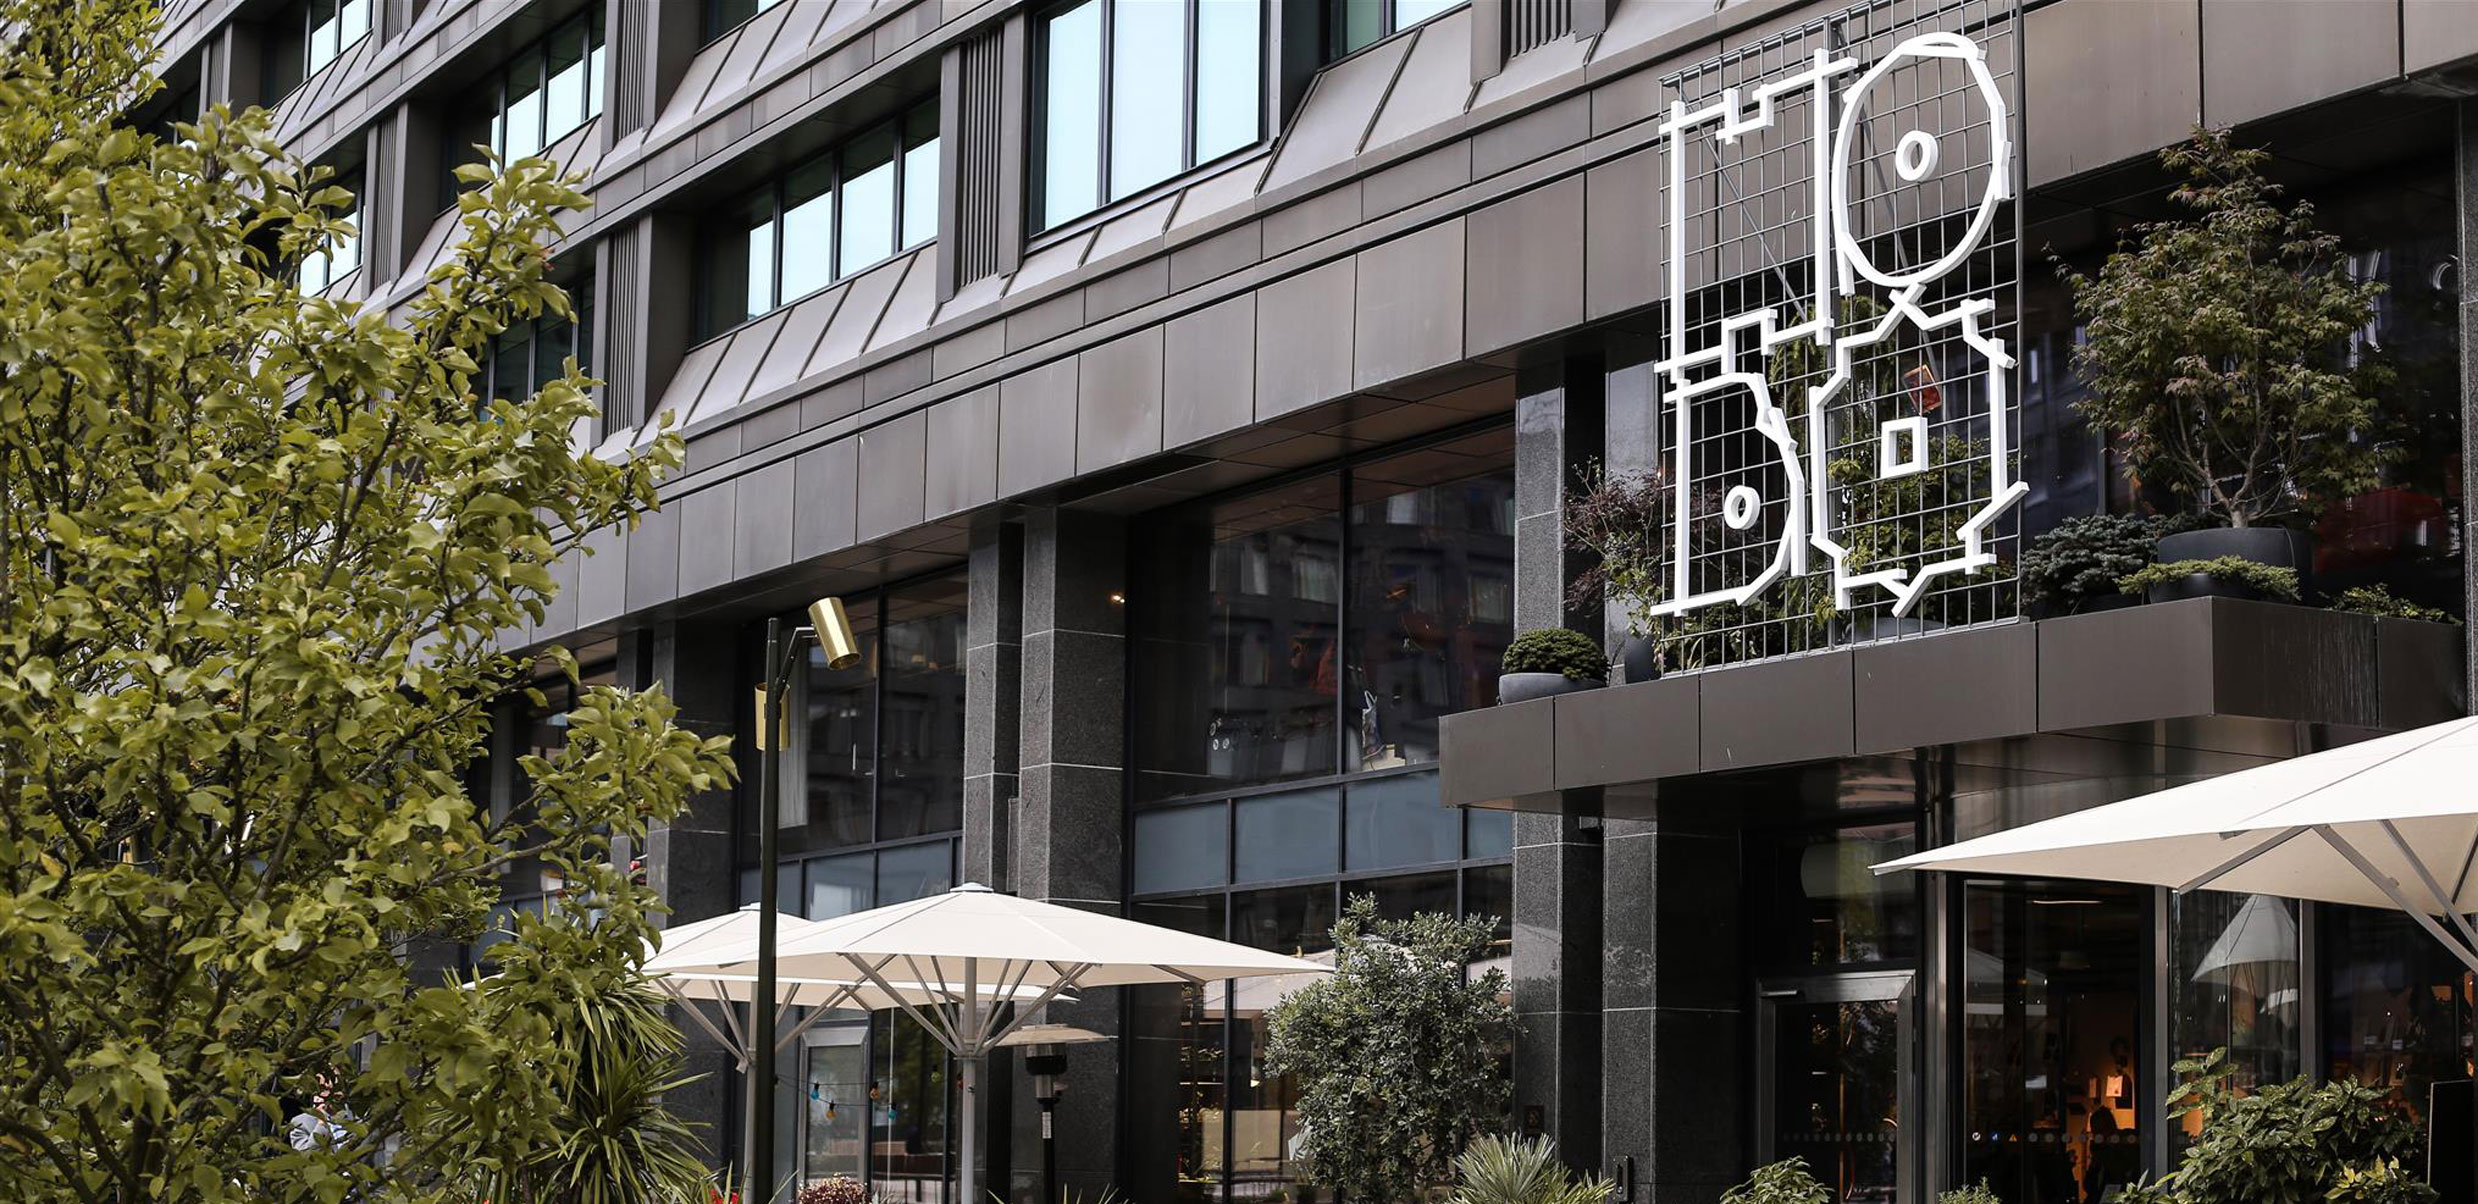 Hobo hotel stockholm 39 s new boutique hotel located in the for Boutique hotel stockholm